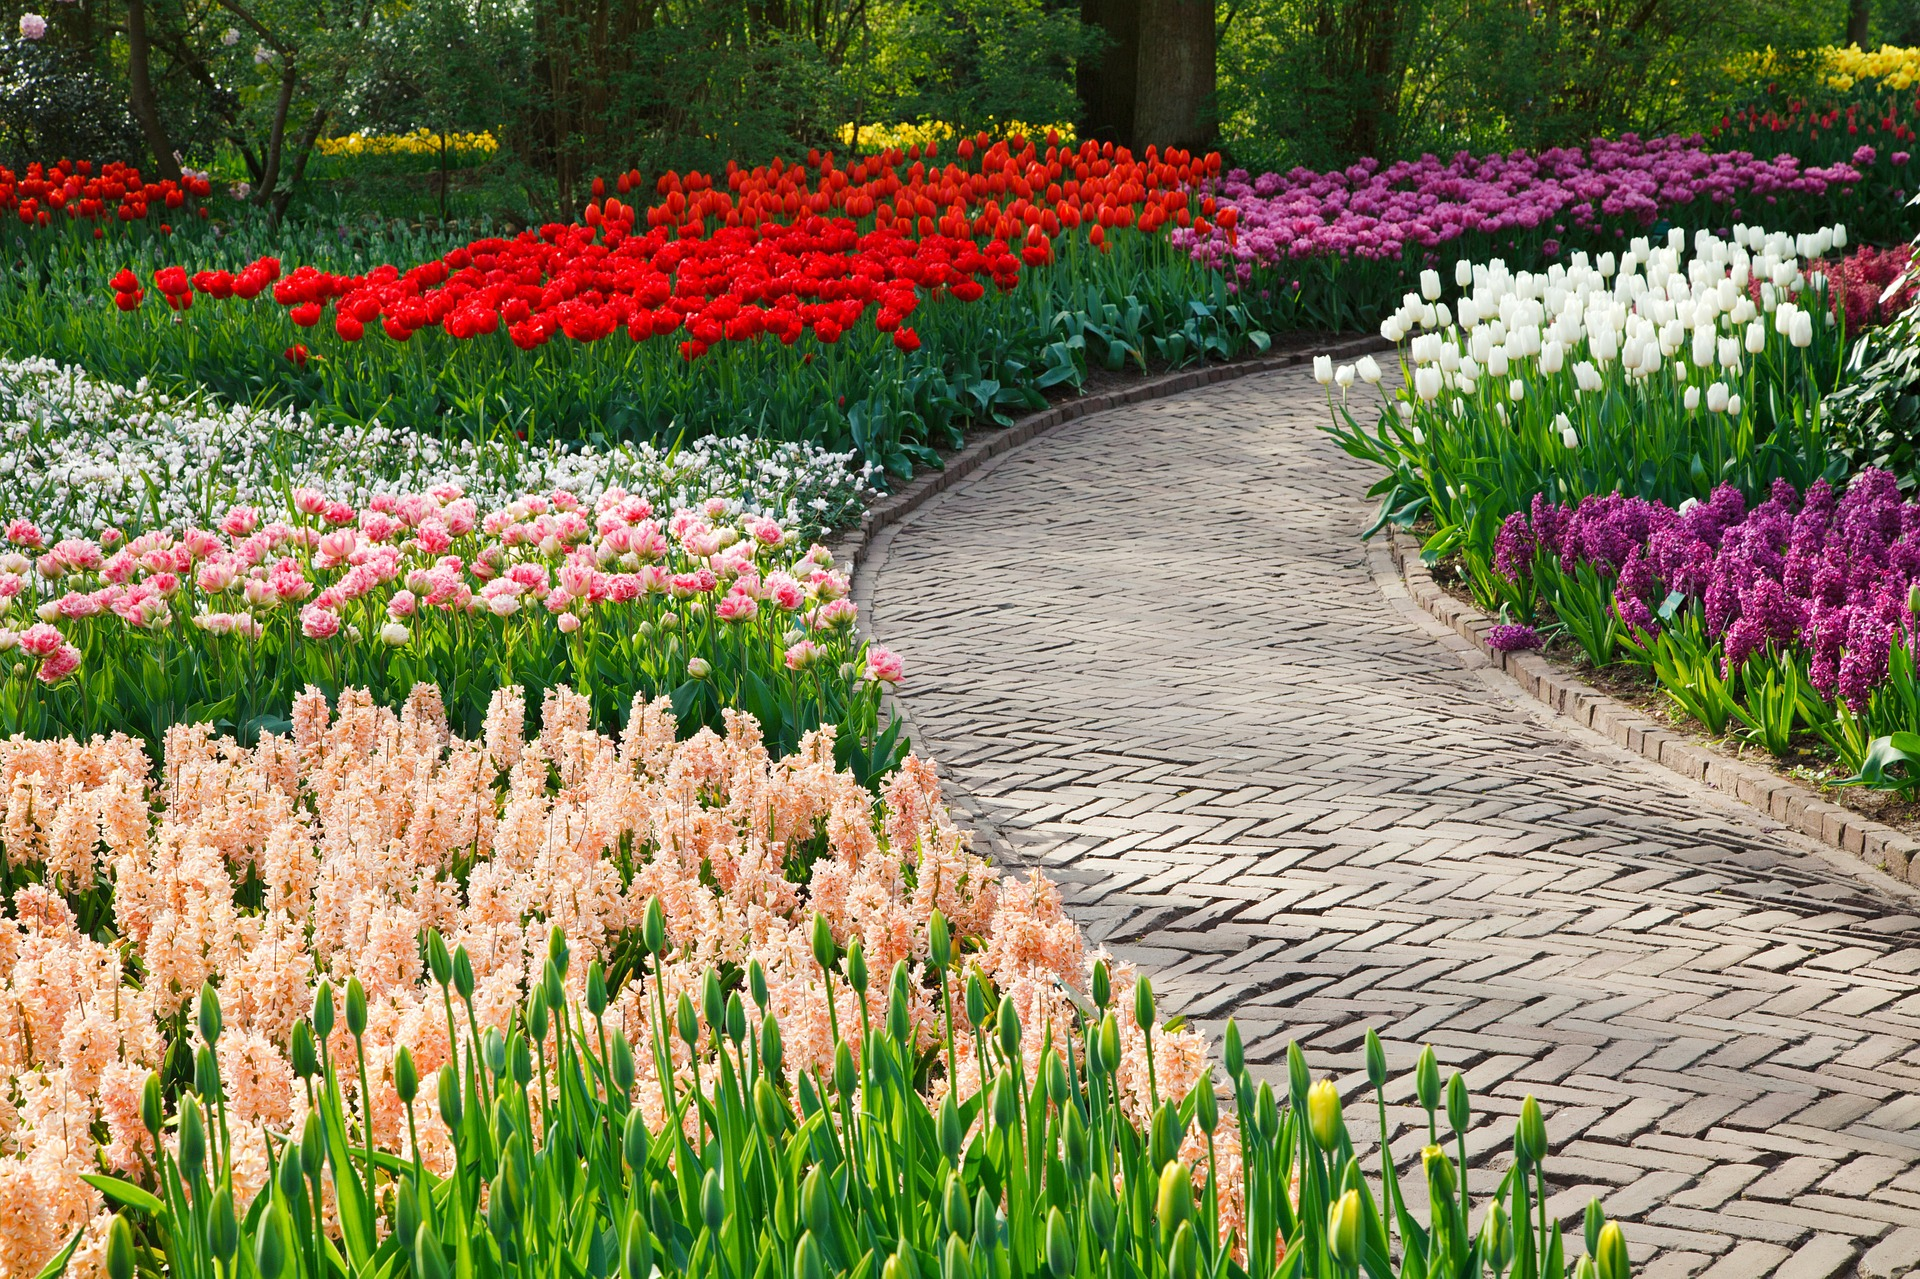 Holland: Tiptoe Through the Tulips